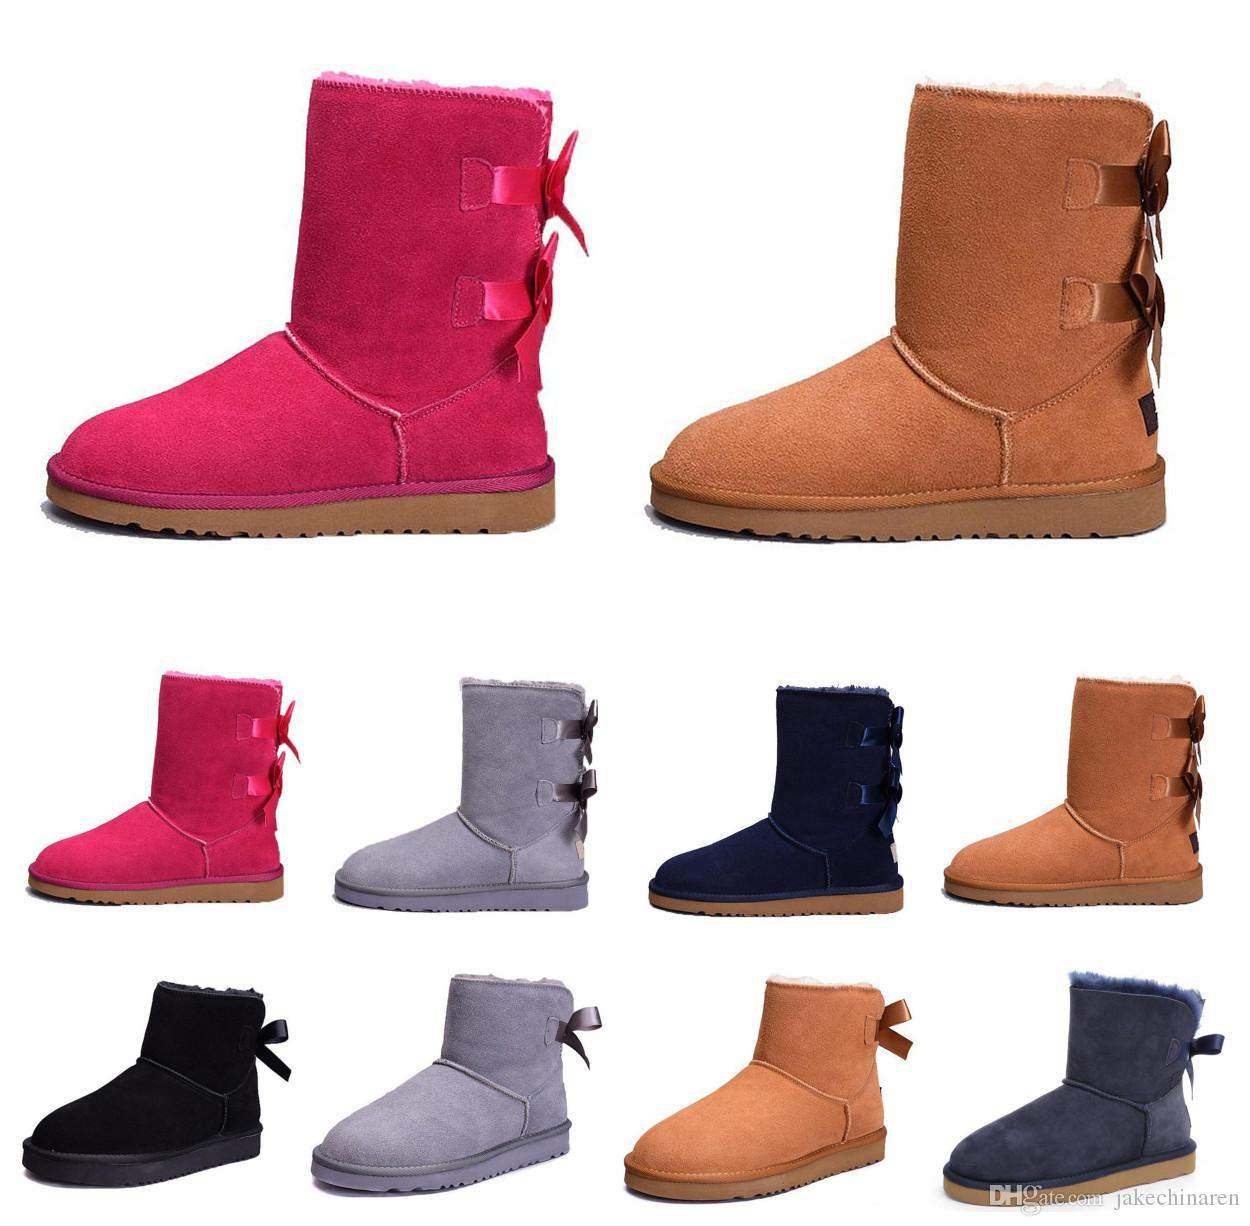 a987556831f Cheap Boots Platform Chunky Woman Ankle Best Black Heeled Open Toed Boots